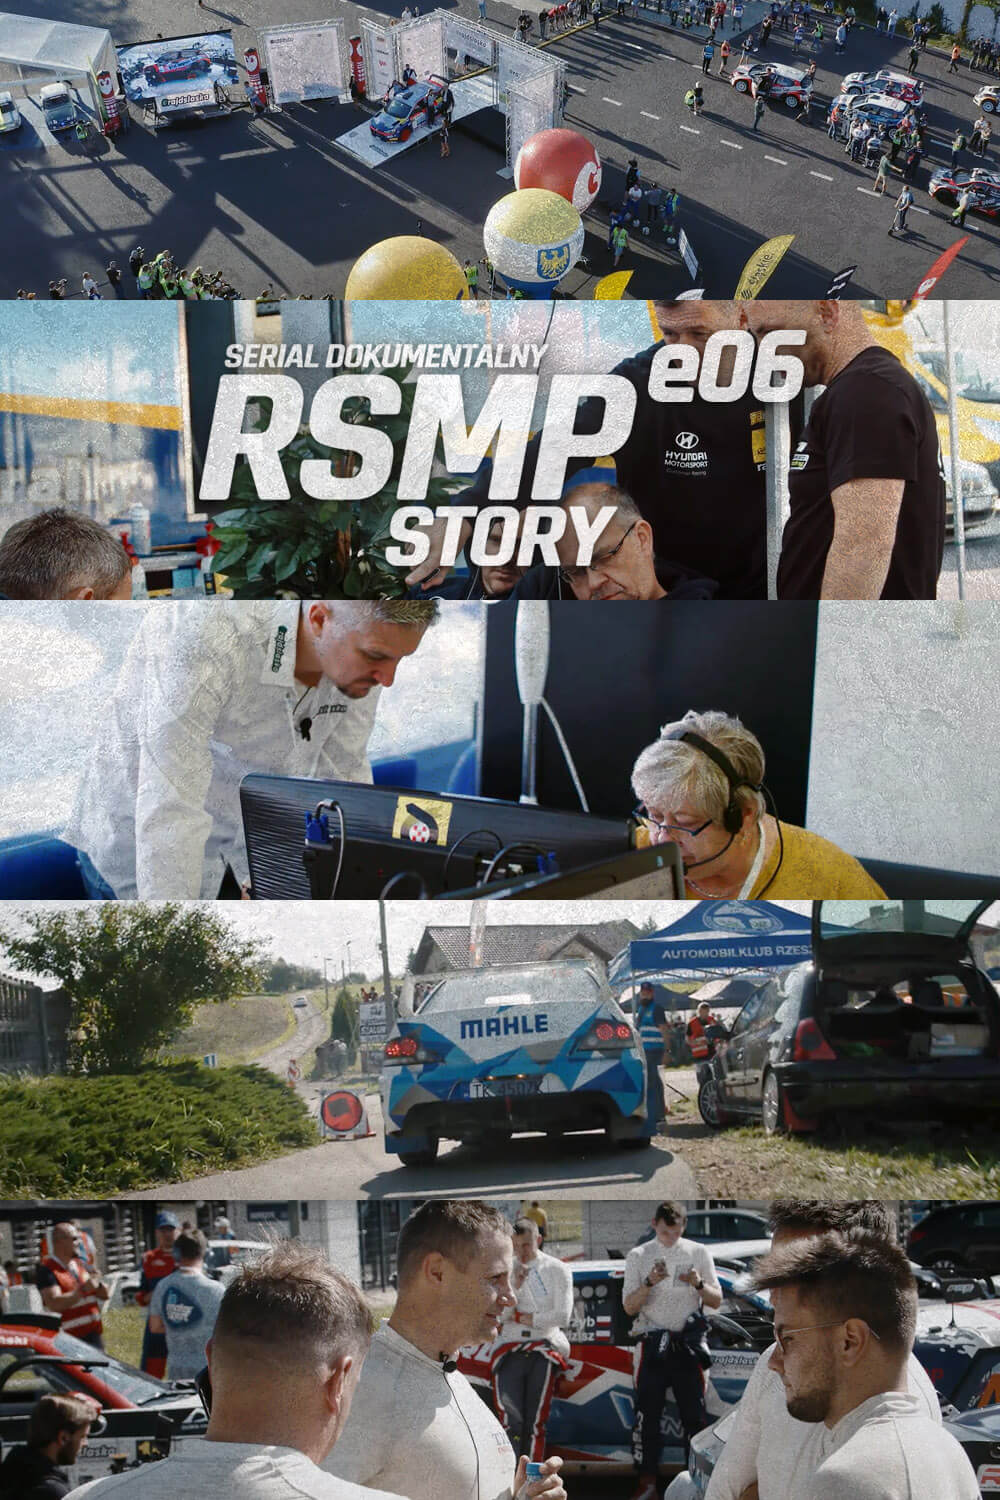 Poster - RSMP STORY s01e06